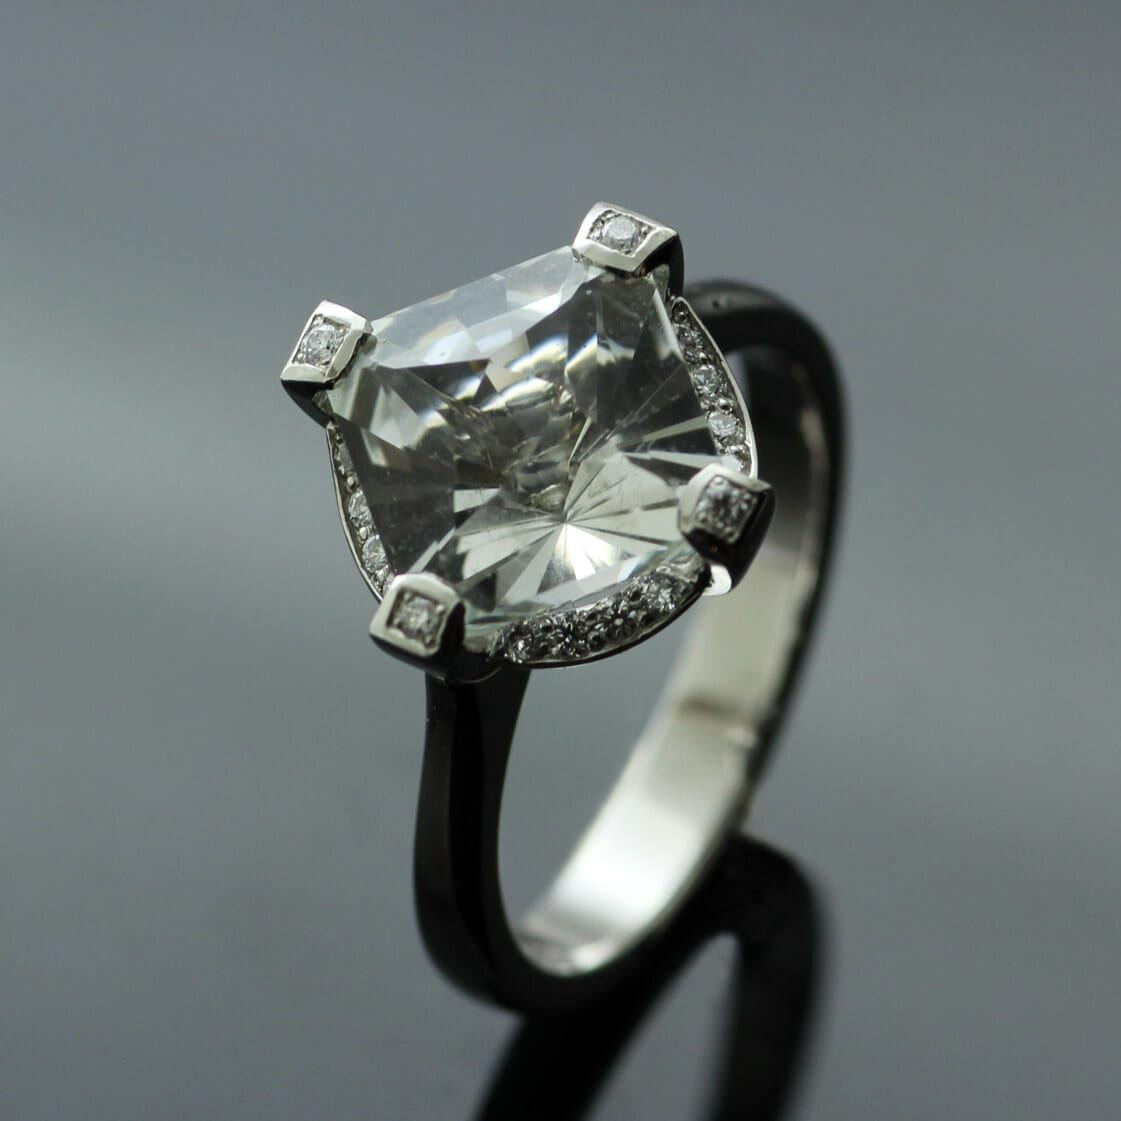 Solid Platinum Gatsby engagement ring set with White Topaz and Diamonds